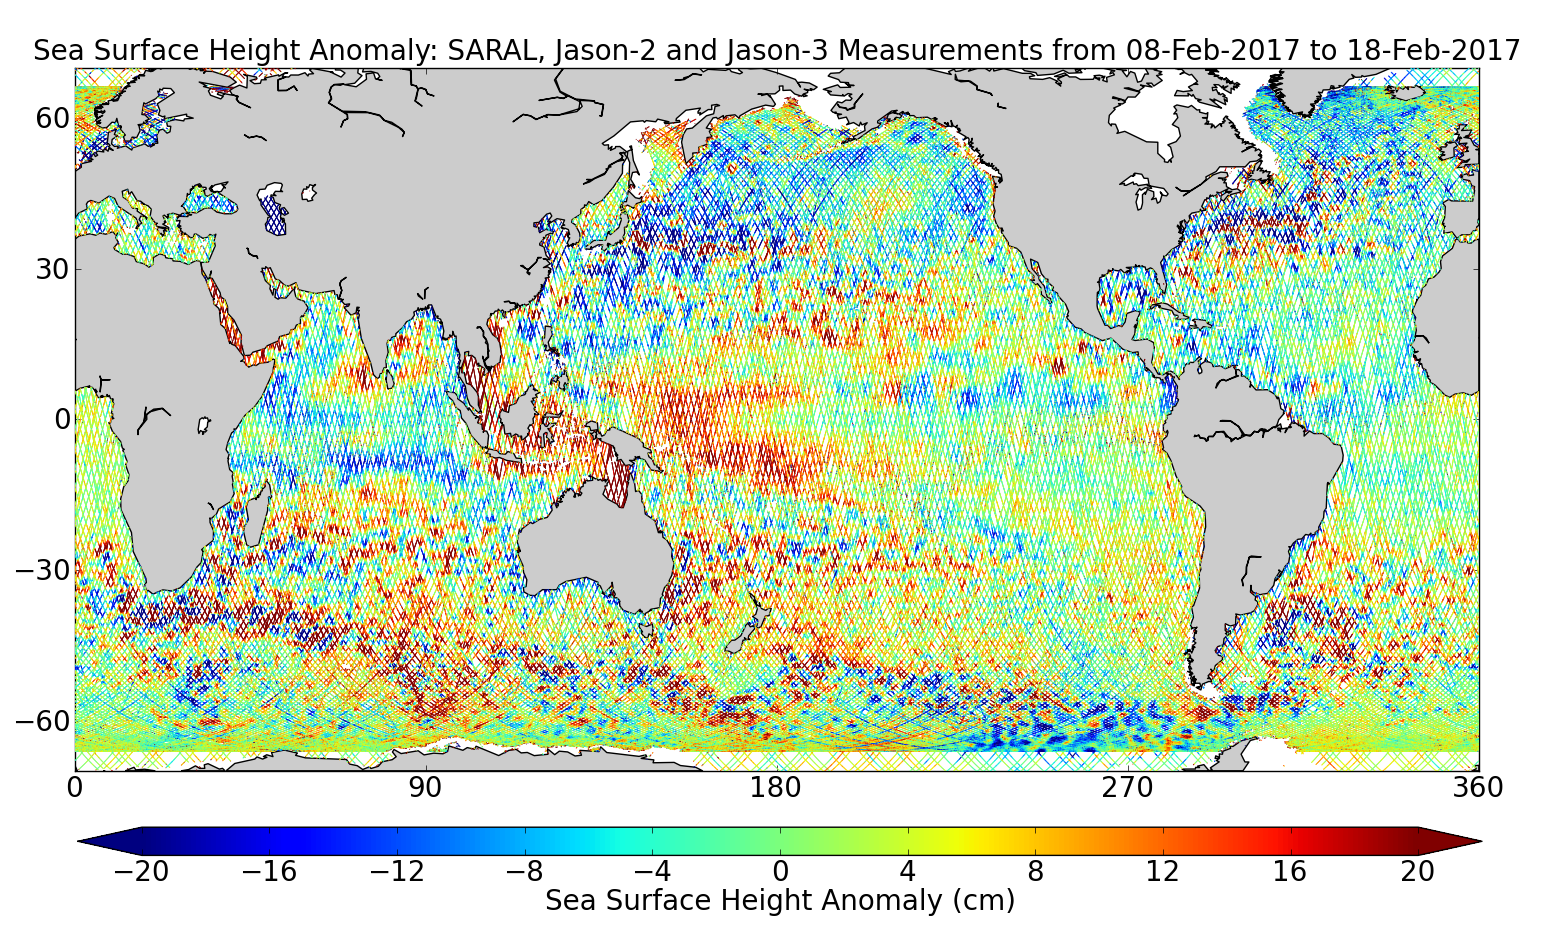 Sea Surface Height Anomaly: SARAL, Jason-2 and Jason-3 Measurements from 08-Feb-2017 to 18-Feb-2017